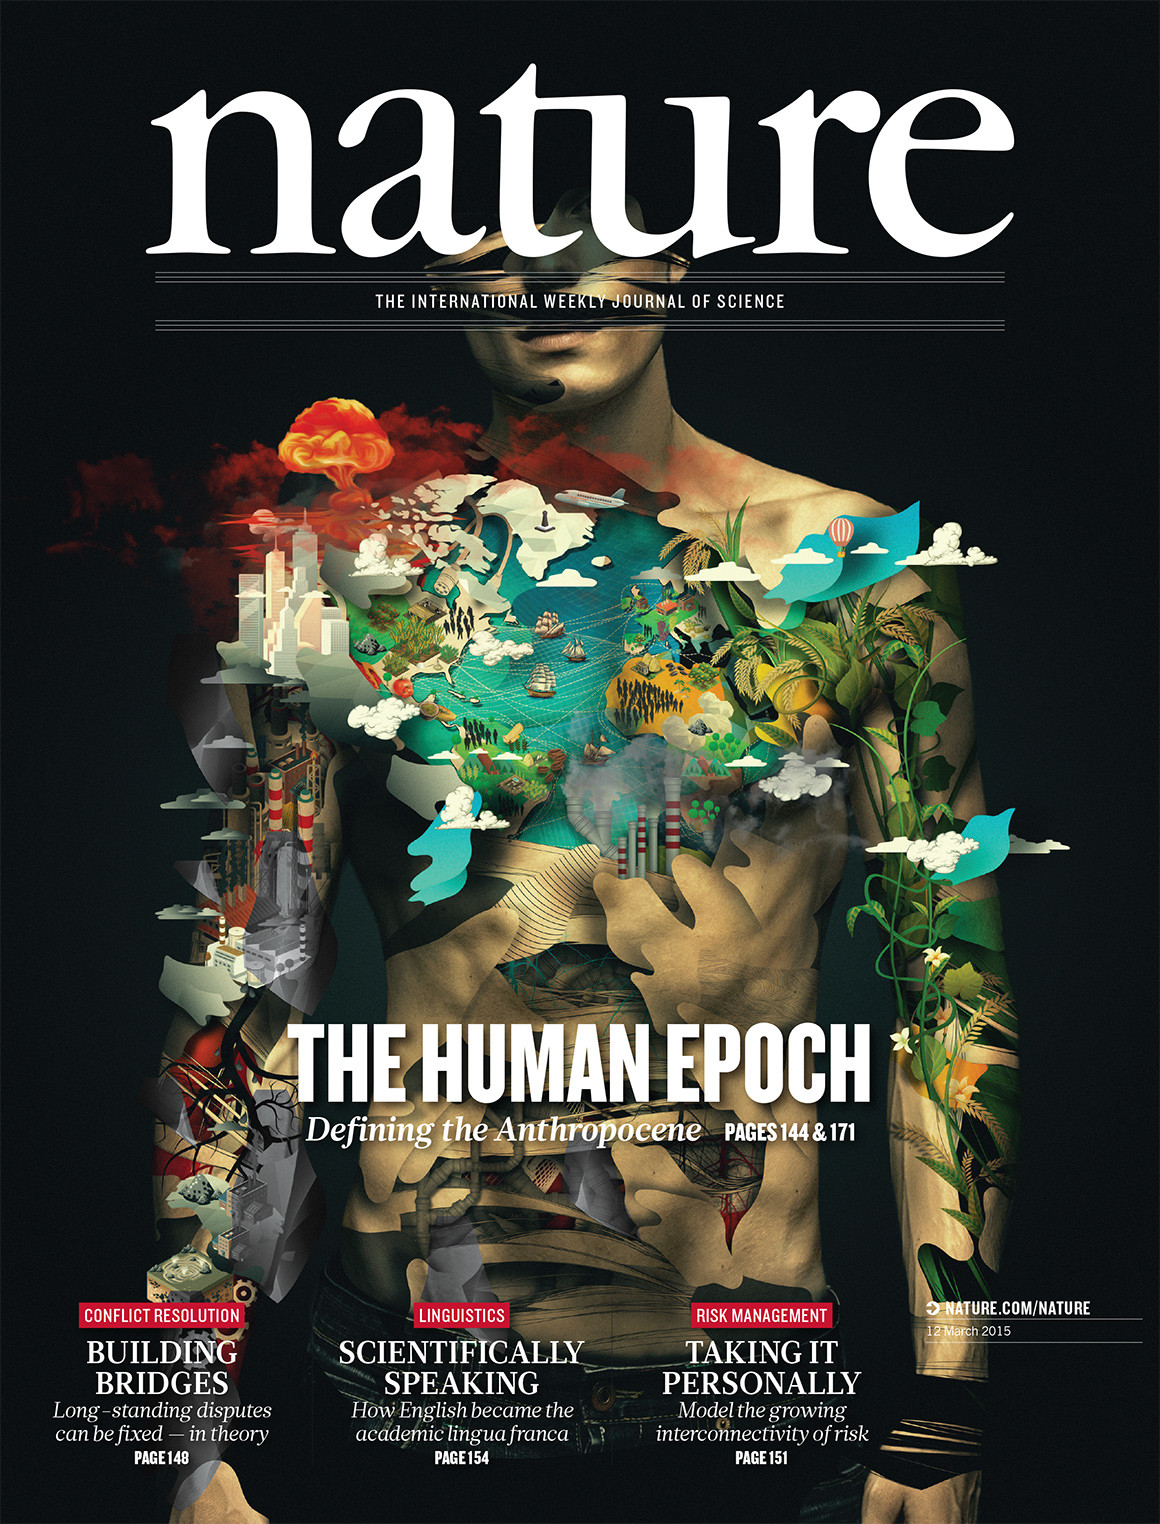 nature anthropocene epoch human seveso alberto illustration journal science magazine covers mark maslin african building graphics defining paper staff academic